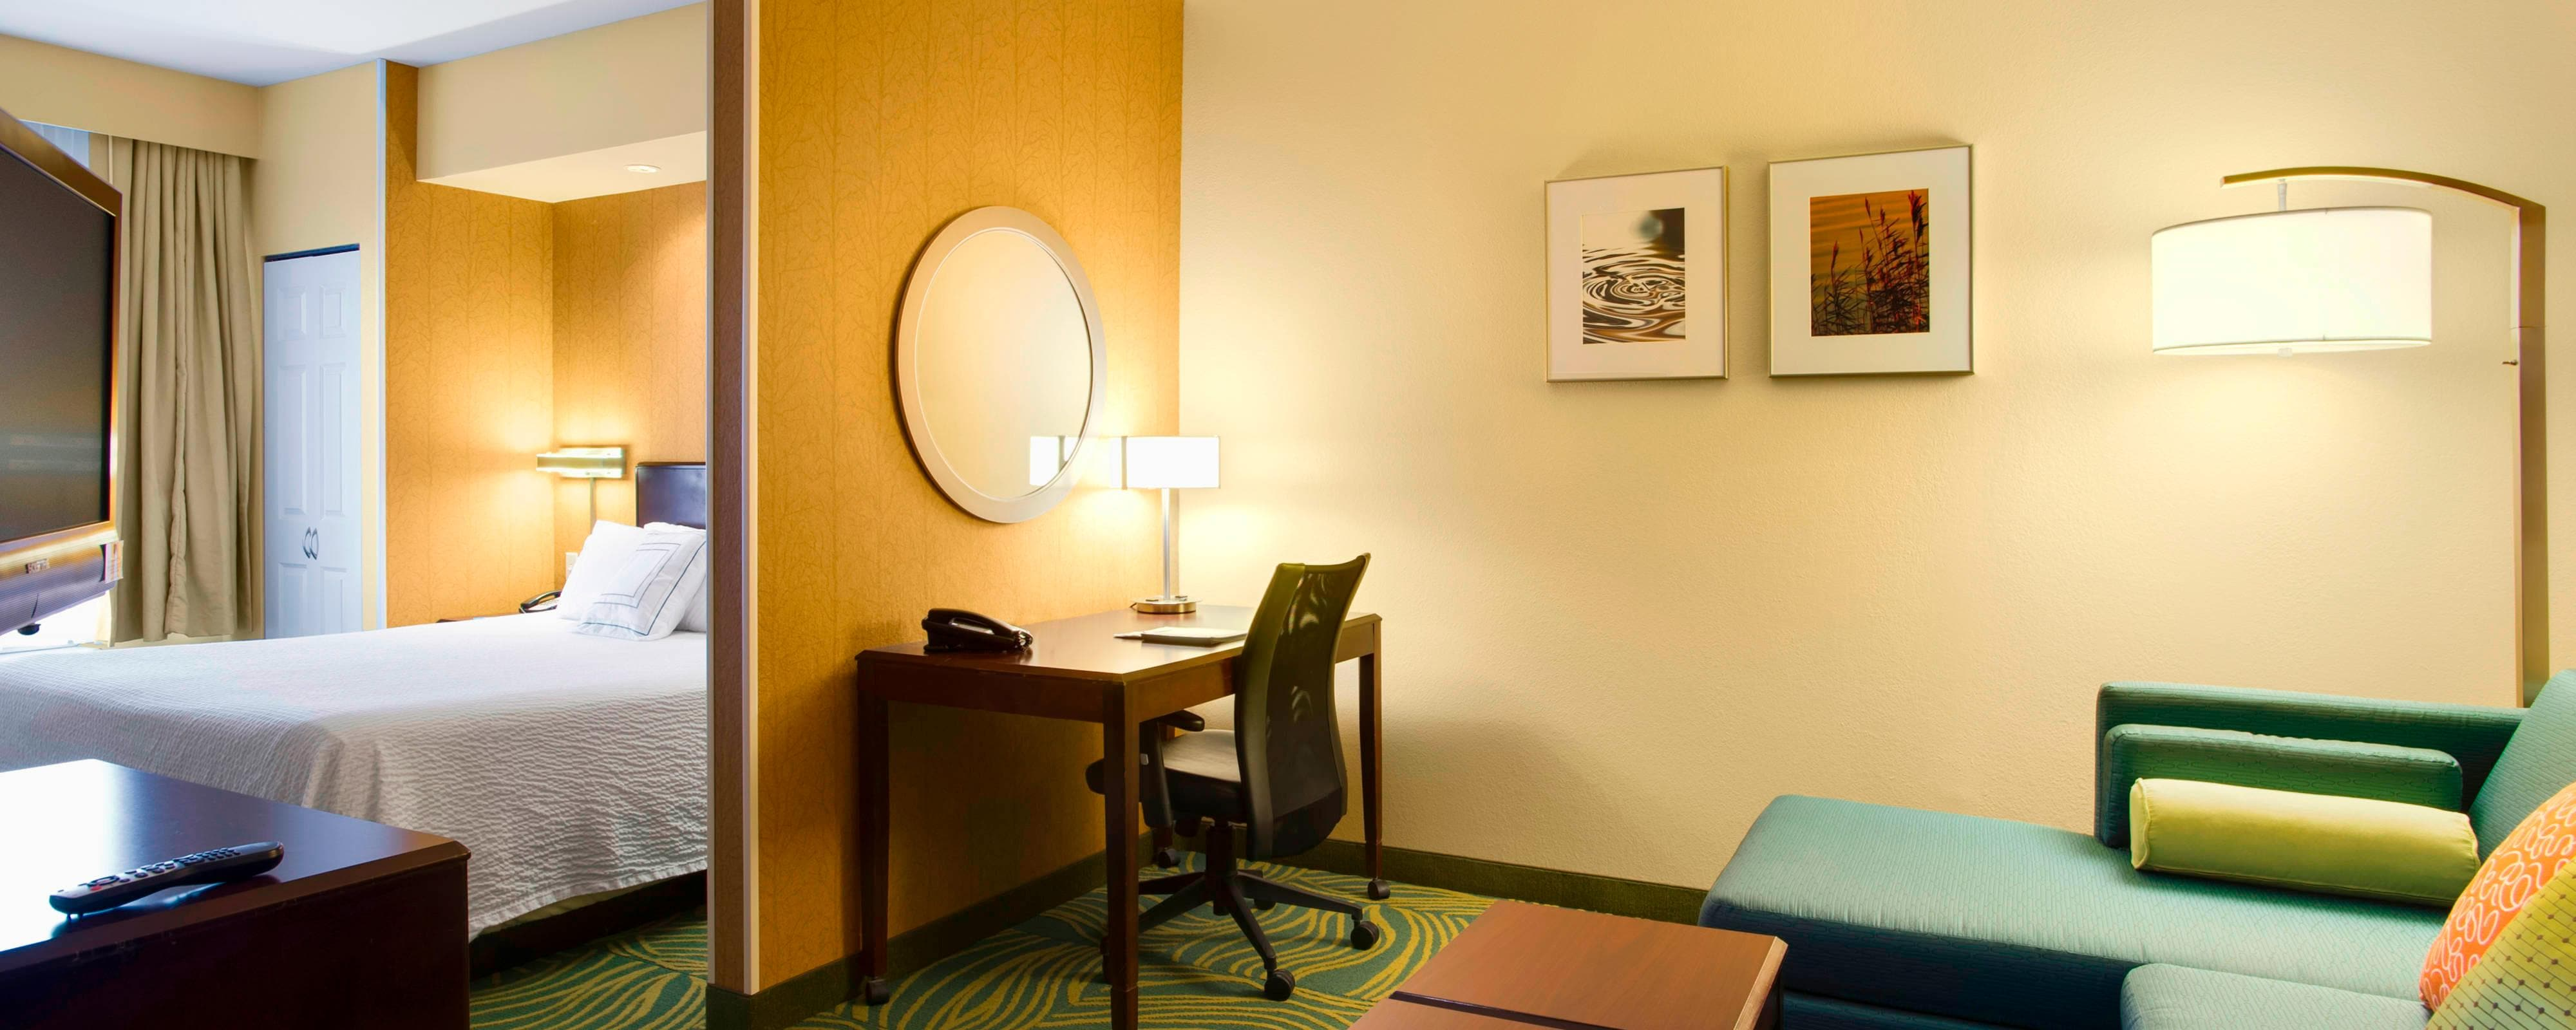 Suite Studio en el SpringHill Suites Council Bluffs